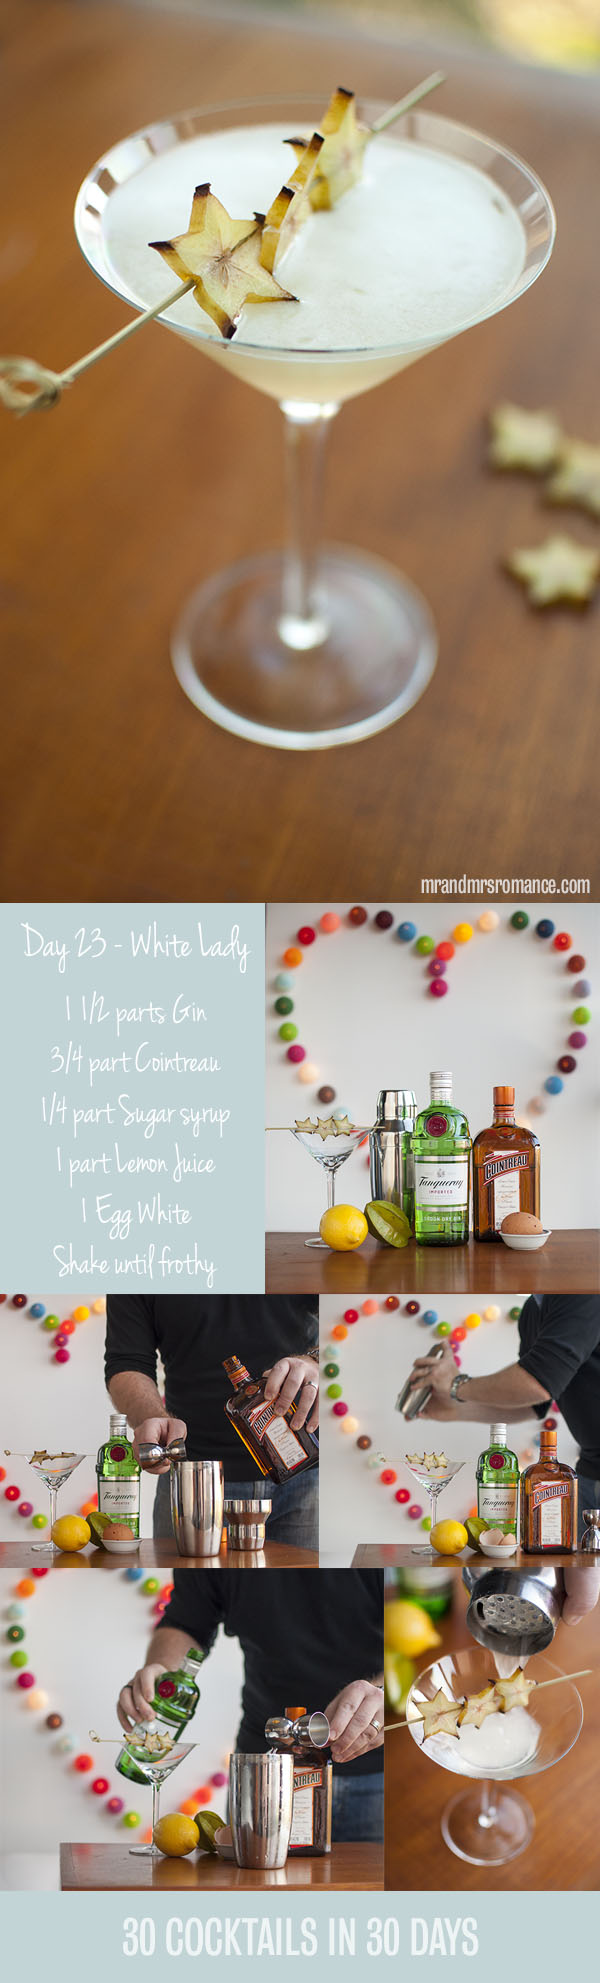 Mr and Mrs Romance - Day 23 - White Lady Cocktail Recipe